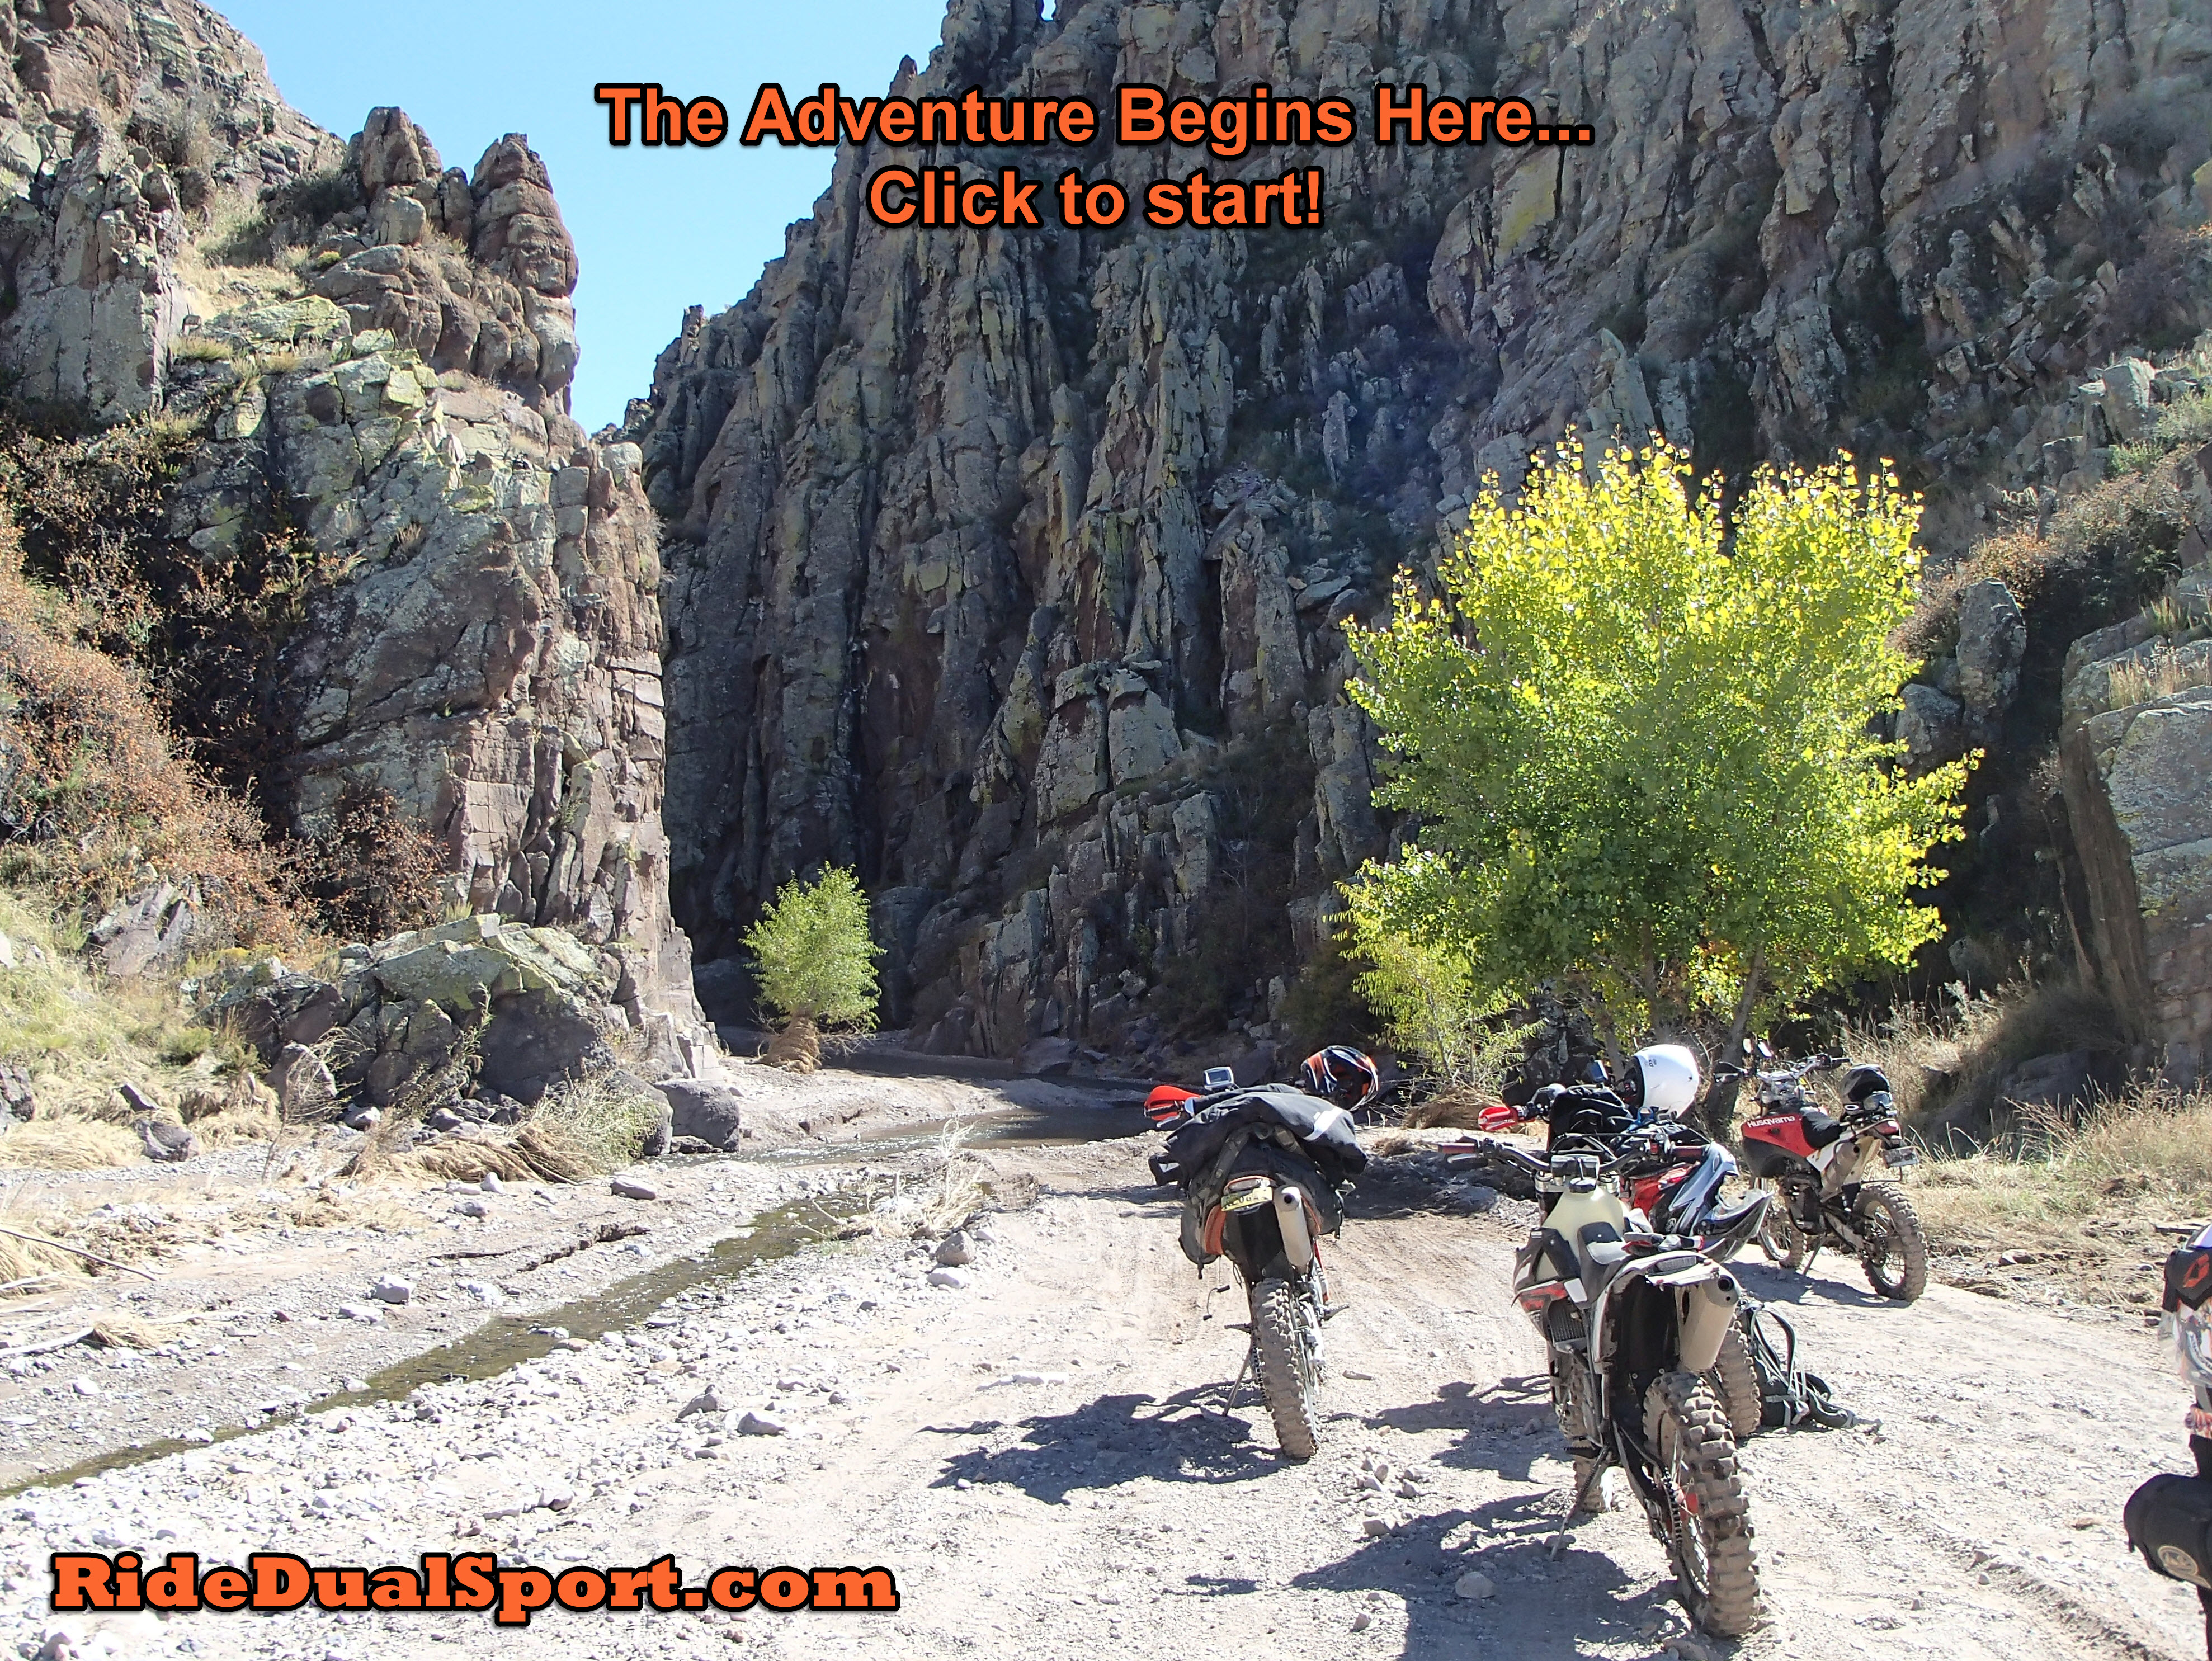 www.RideDualSport.com